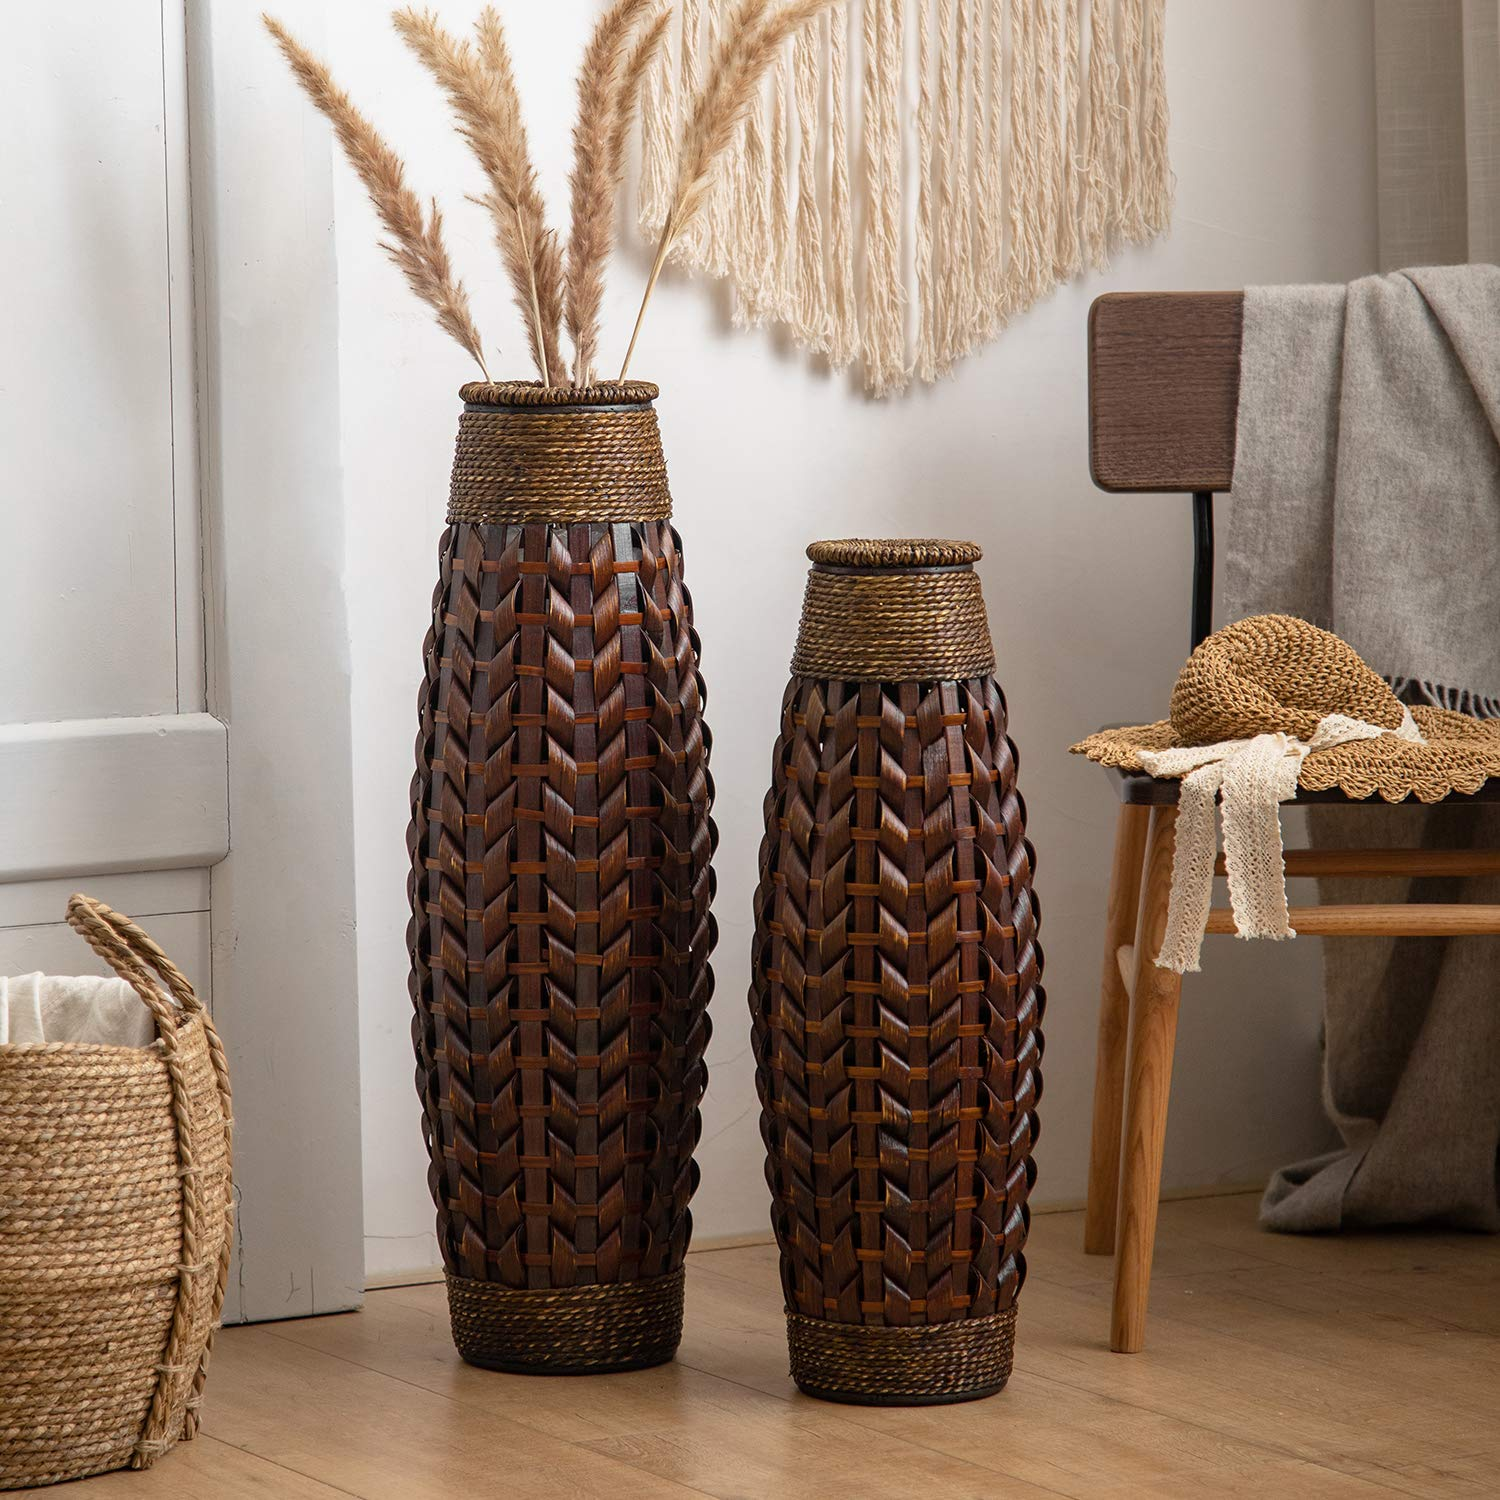 Buy Huidao Tall Floor Vase 28 High Bamboo And Grass Standing Vase Floor Vase For Home Office Living Room Decor Style 1 Large Online At Low Prices In India Amazon In